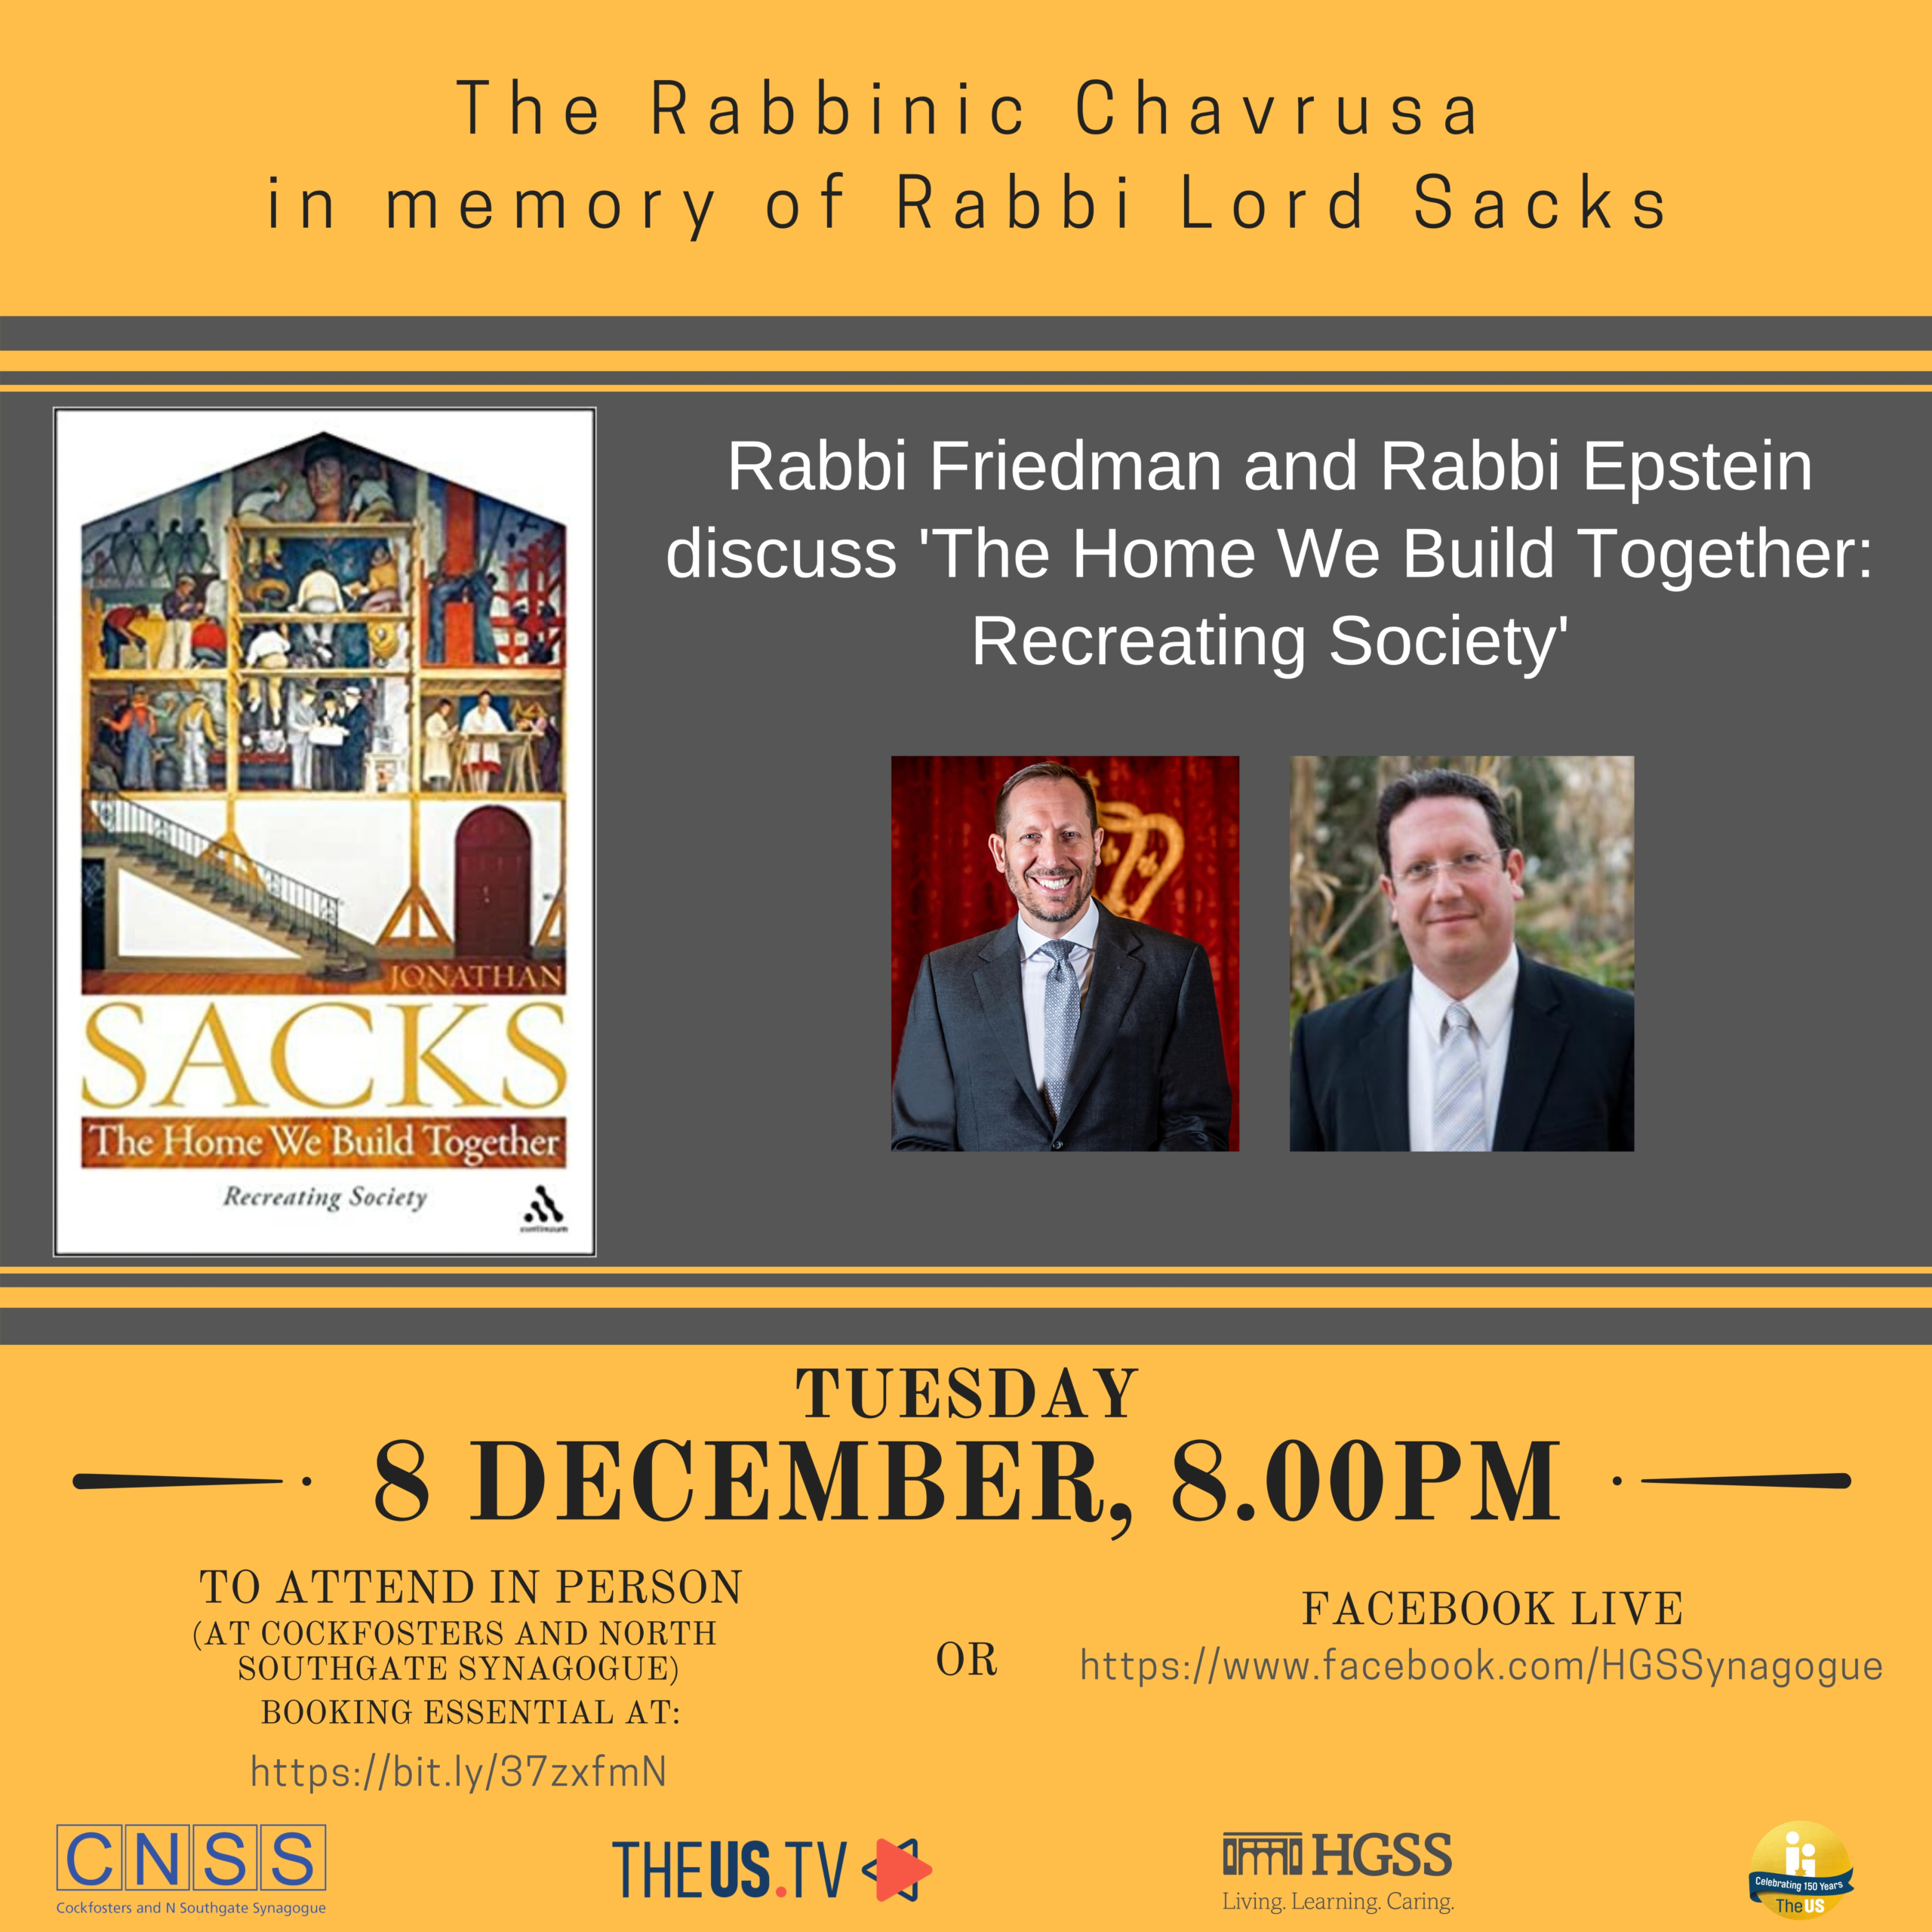 The Rabbinic Chavrusa @ Cockfosters and North Southgate Synagogue